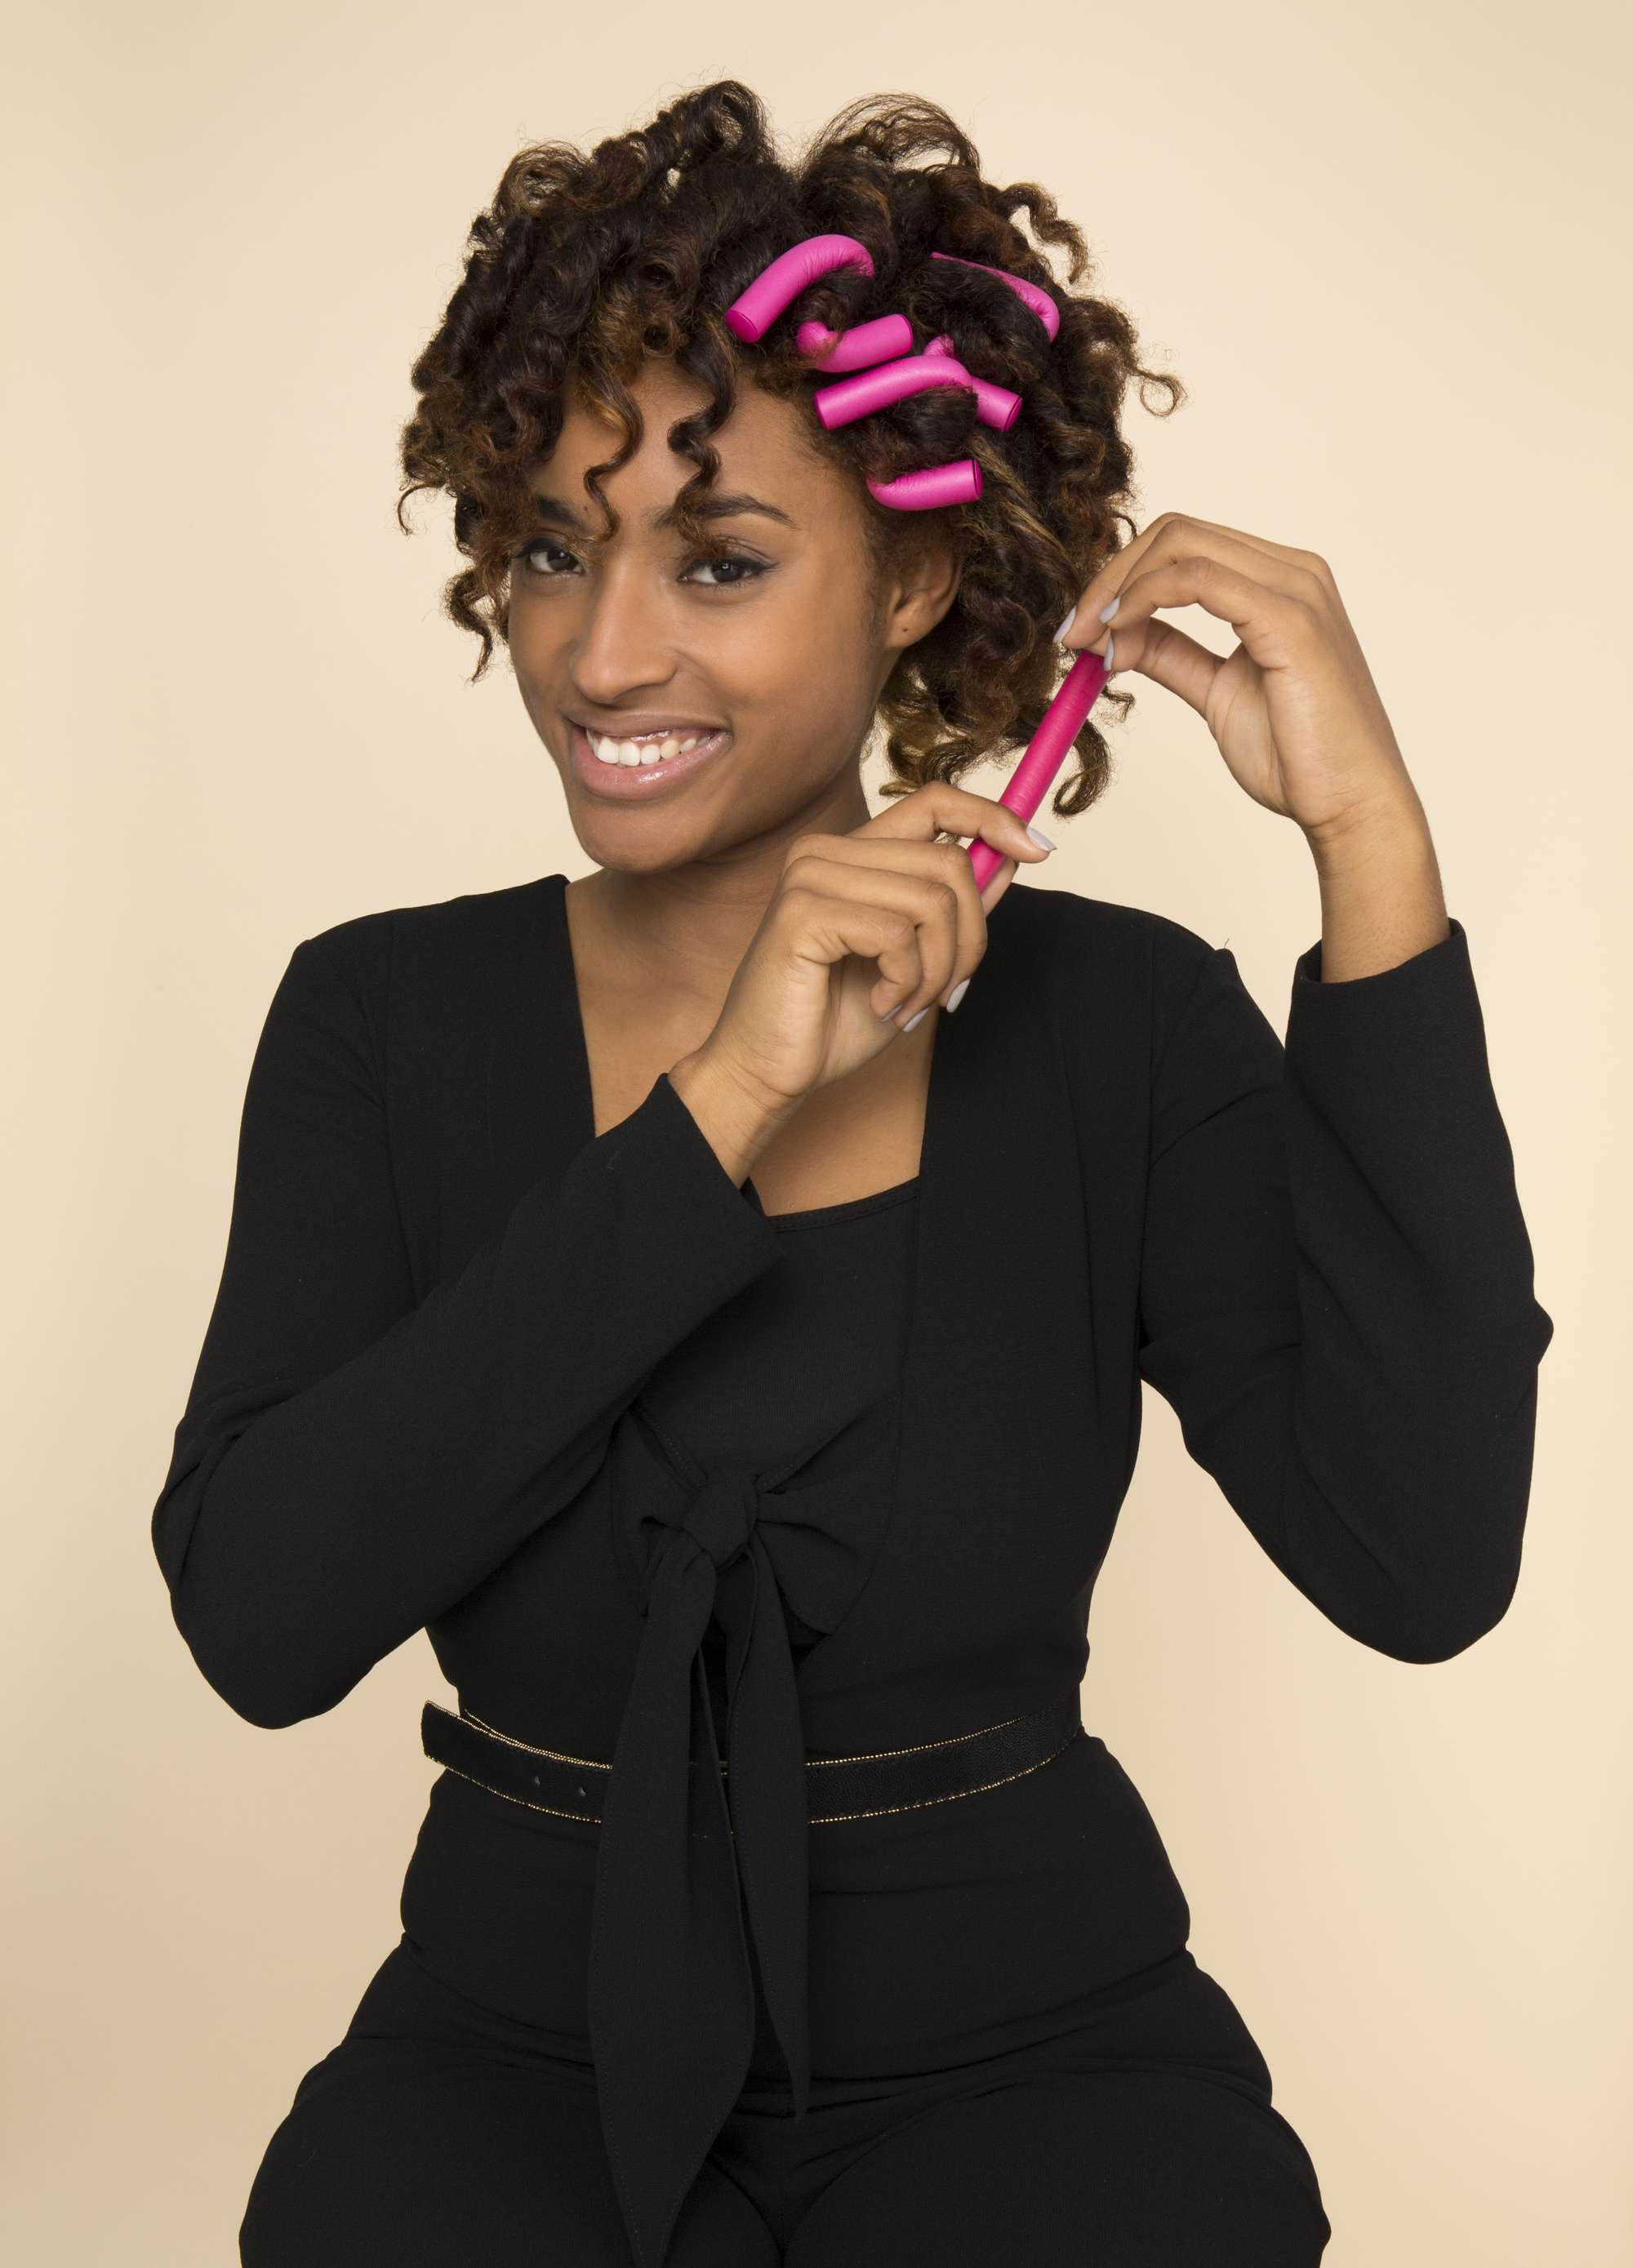 black model curling her hair with pink flexi rods